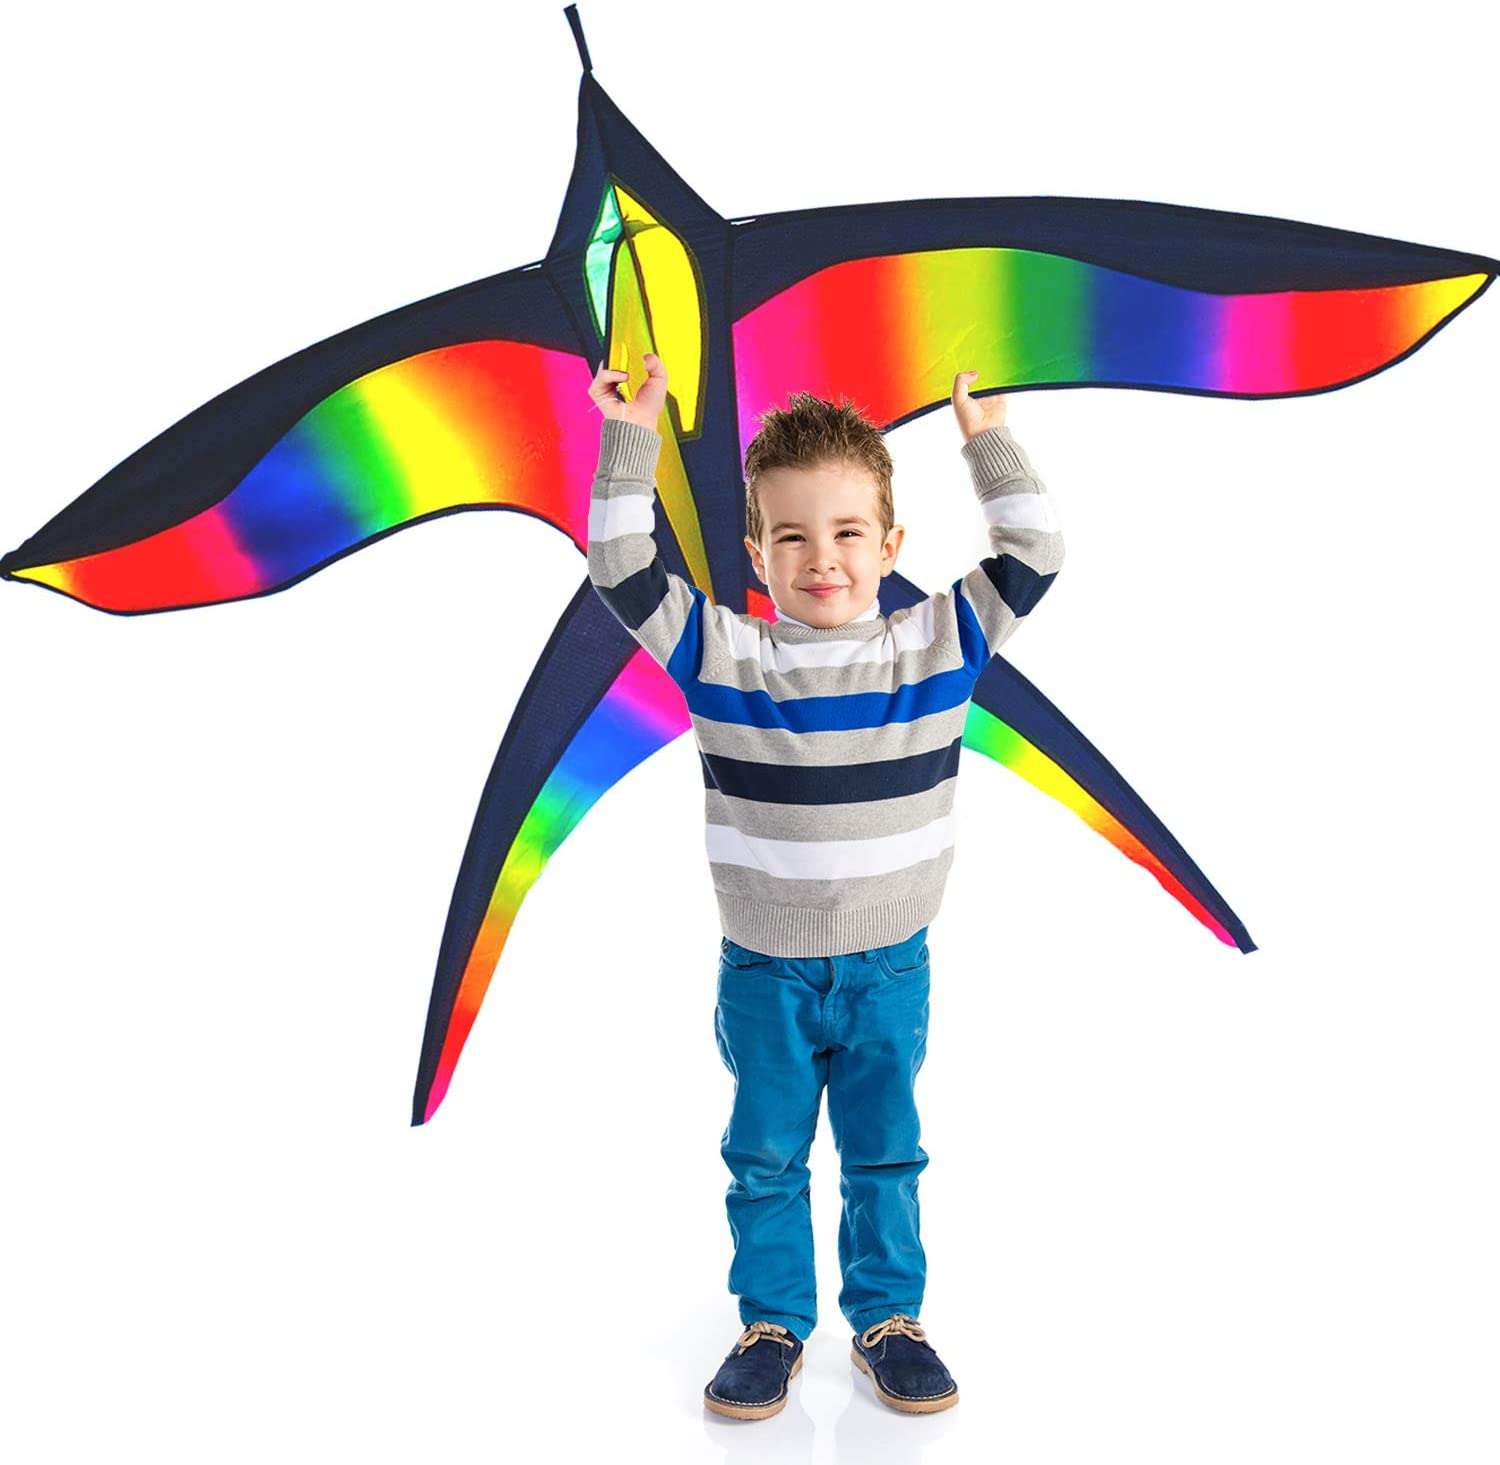 Stoie's Bird Kite – Huge Kite - Ideal for Kids and Adults